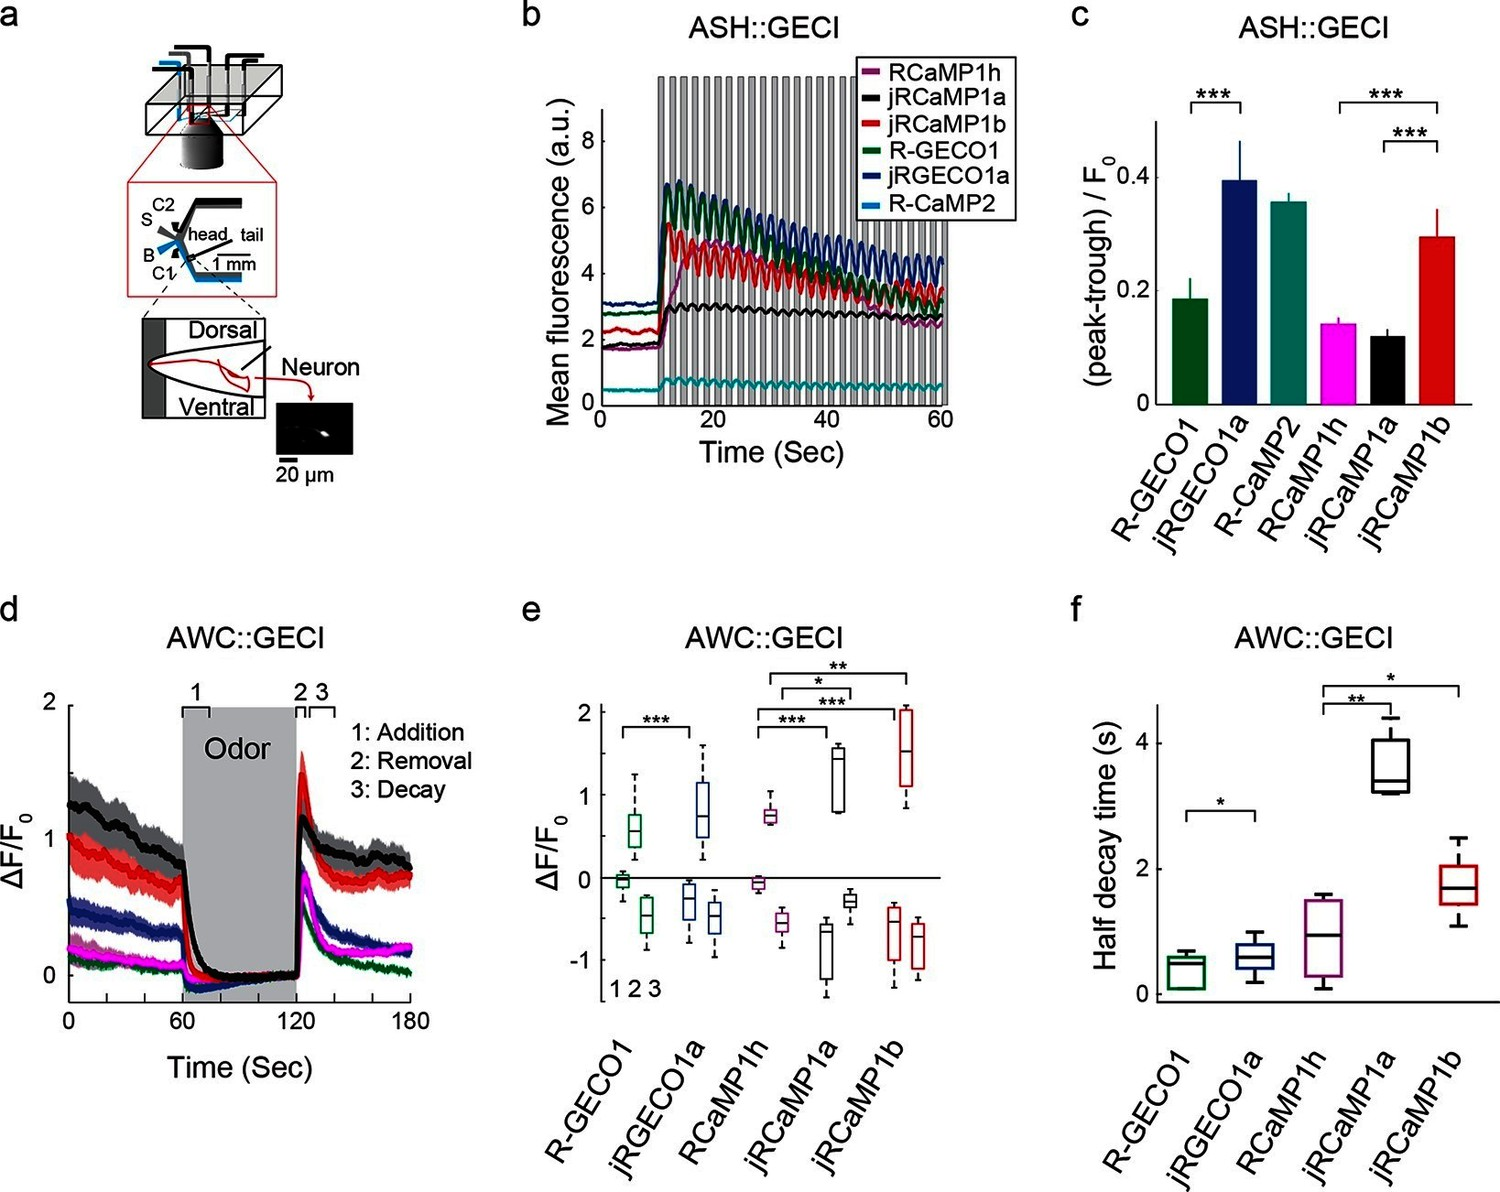 hight resolution of imaging activity in the c elegans ash and awc neurons with red gecis